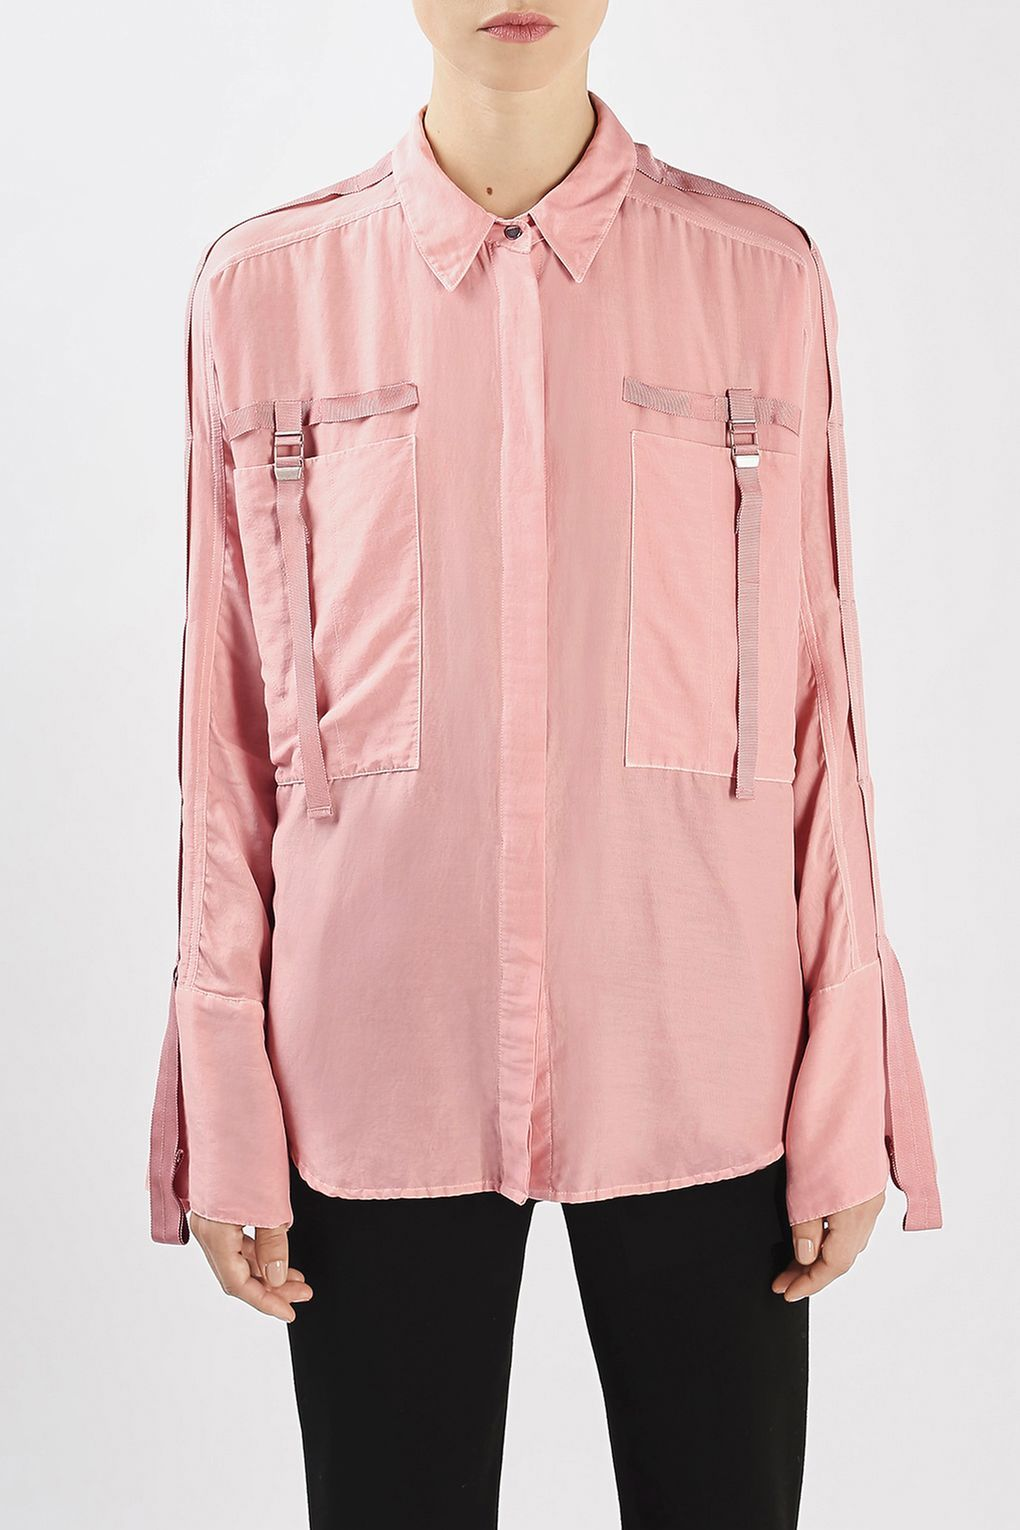 Lonny Shirt by Unique - Tops - Clothing